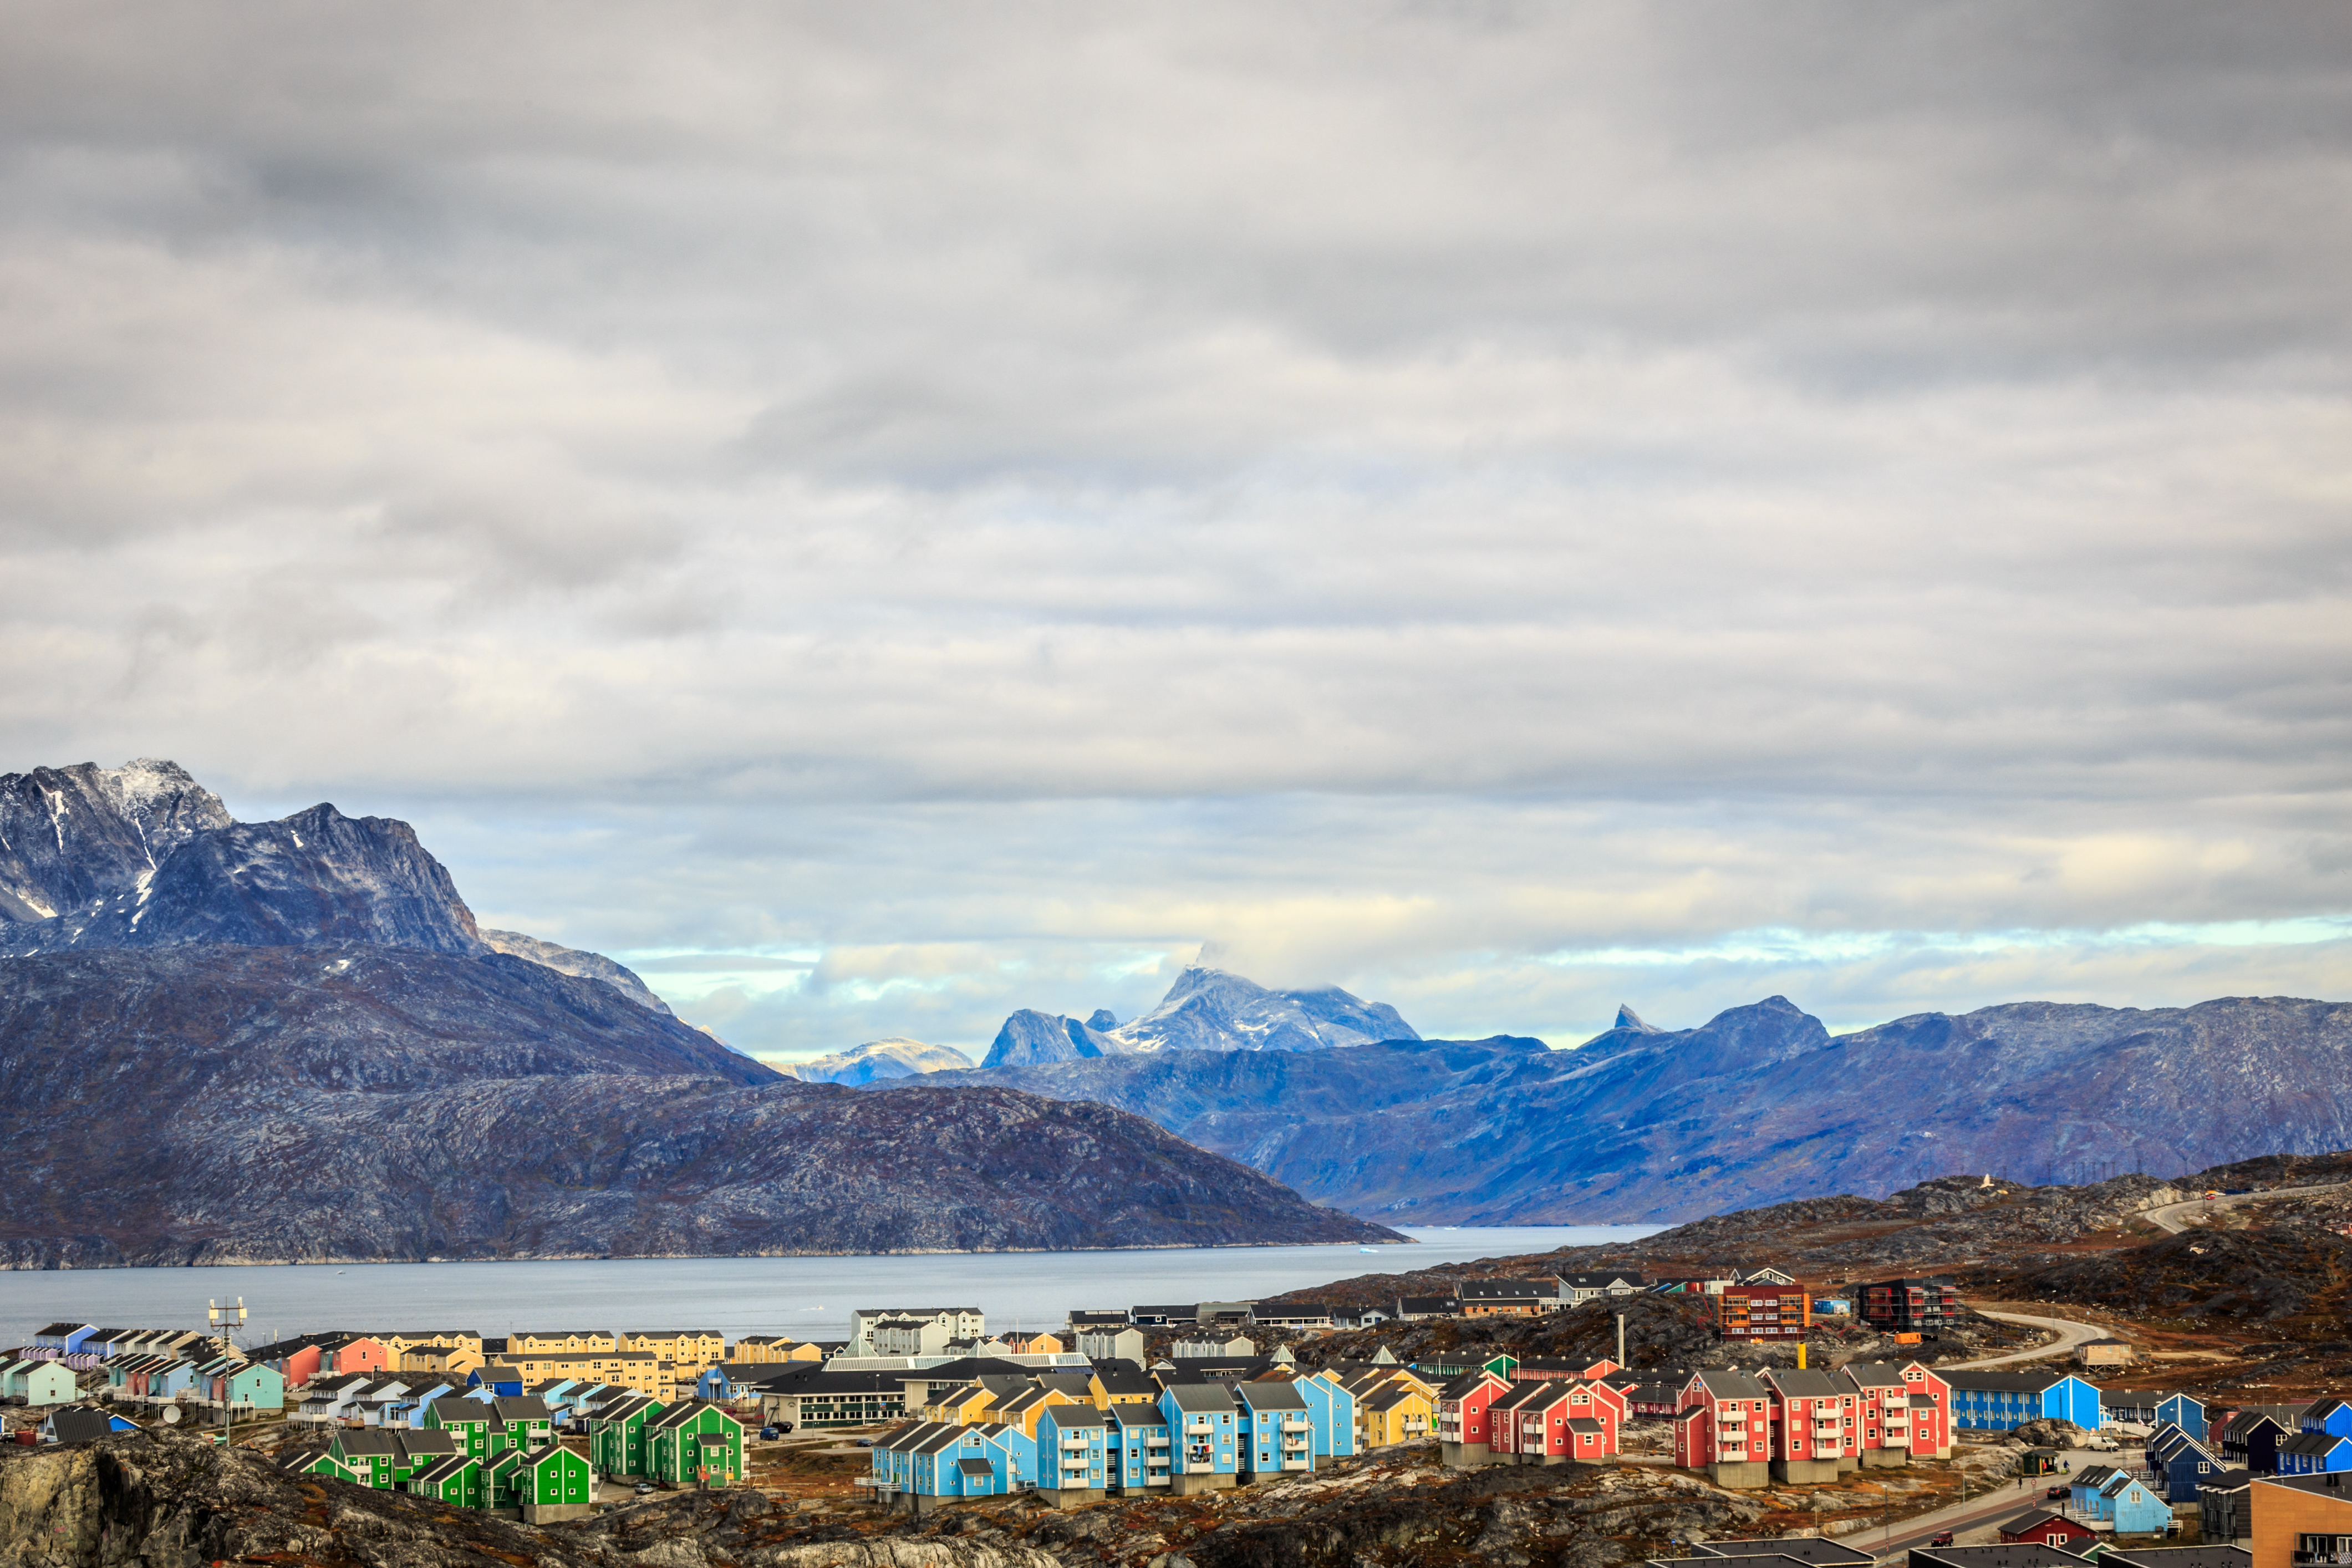 Nuuk is one of the coolest places in the world during the summer. Image: Hundredrooms